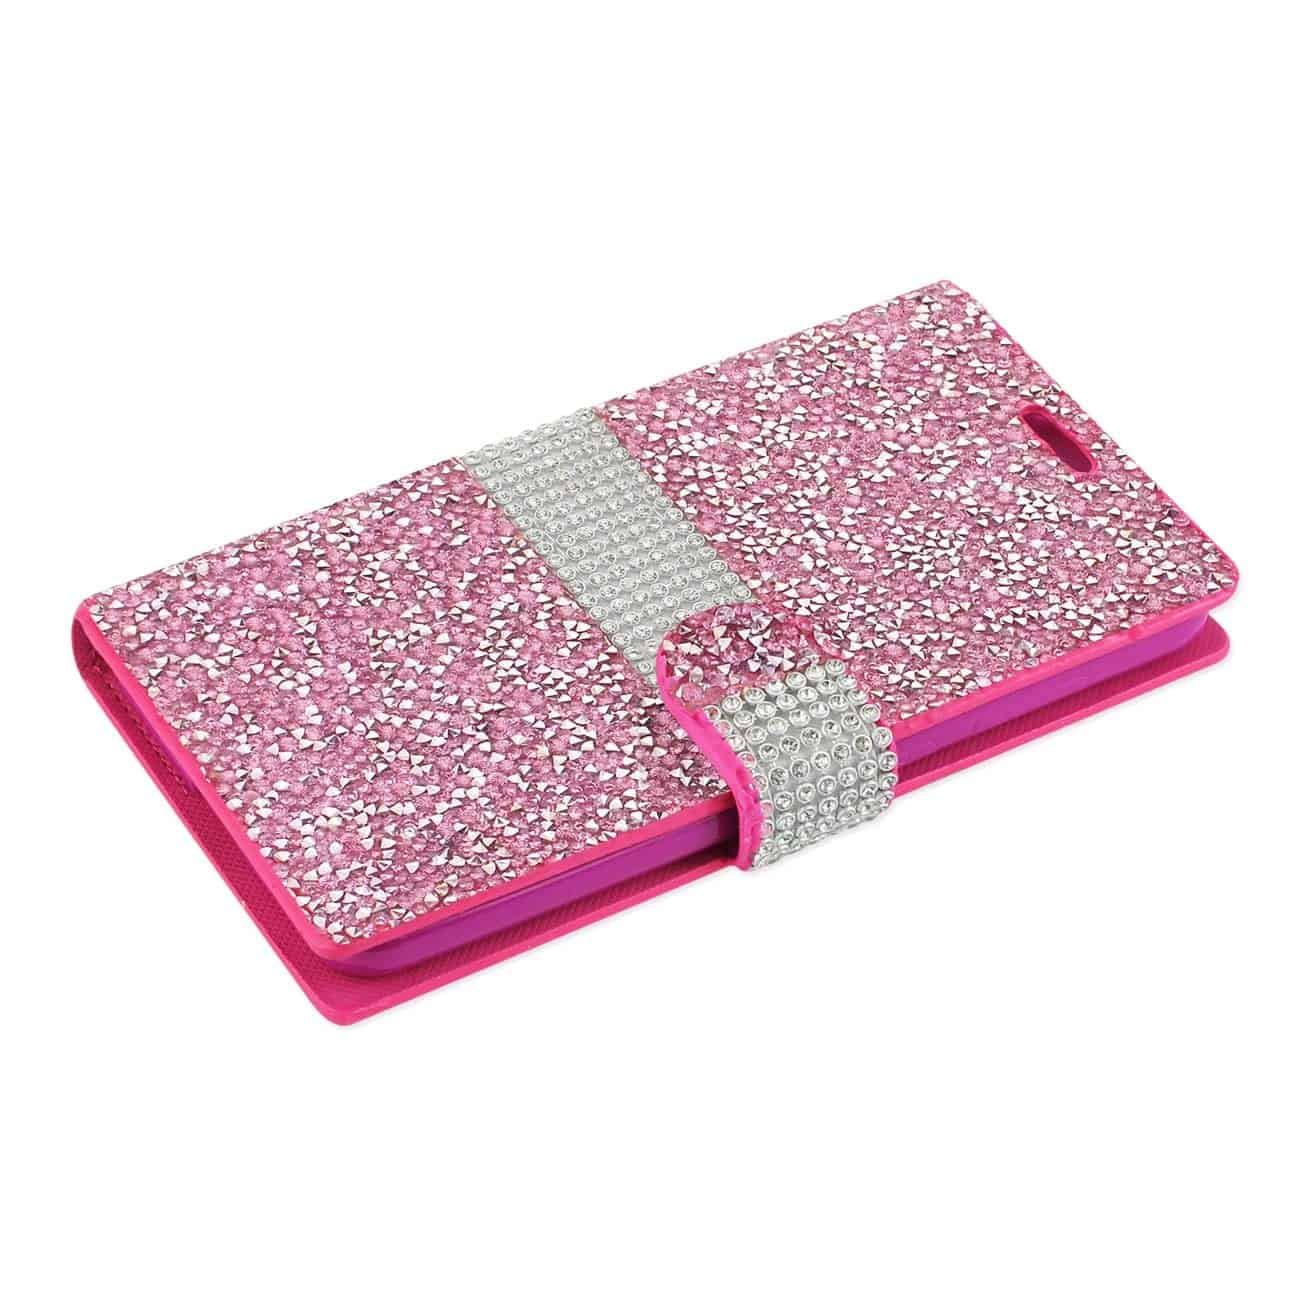 GRAND X 4 DIAMOND RHINESTONE WALLET CASE IN PINK